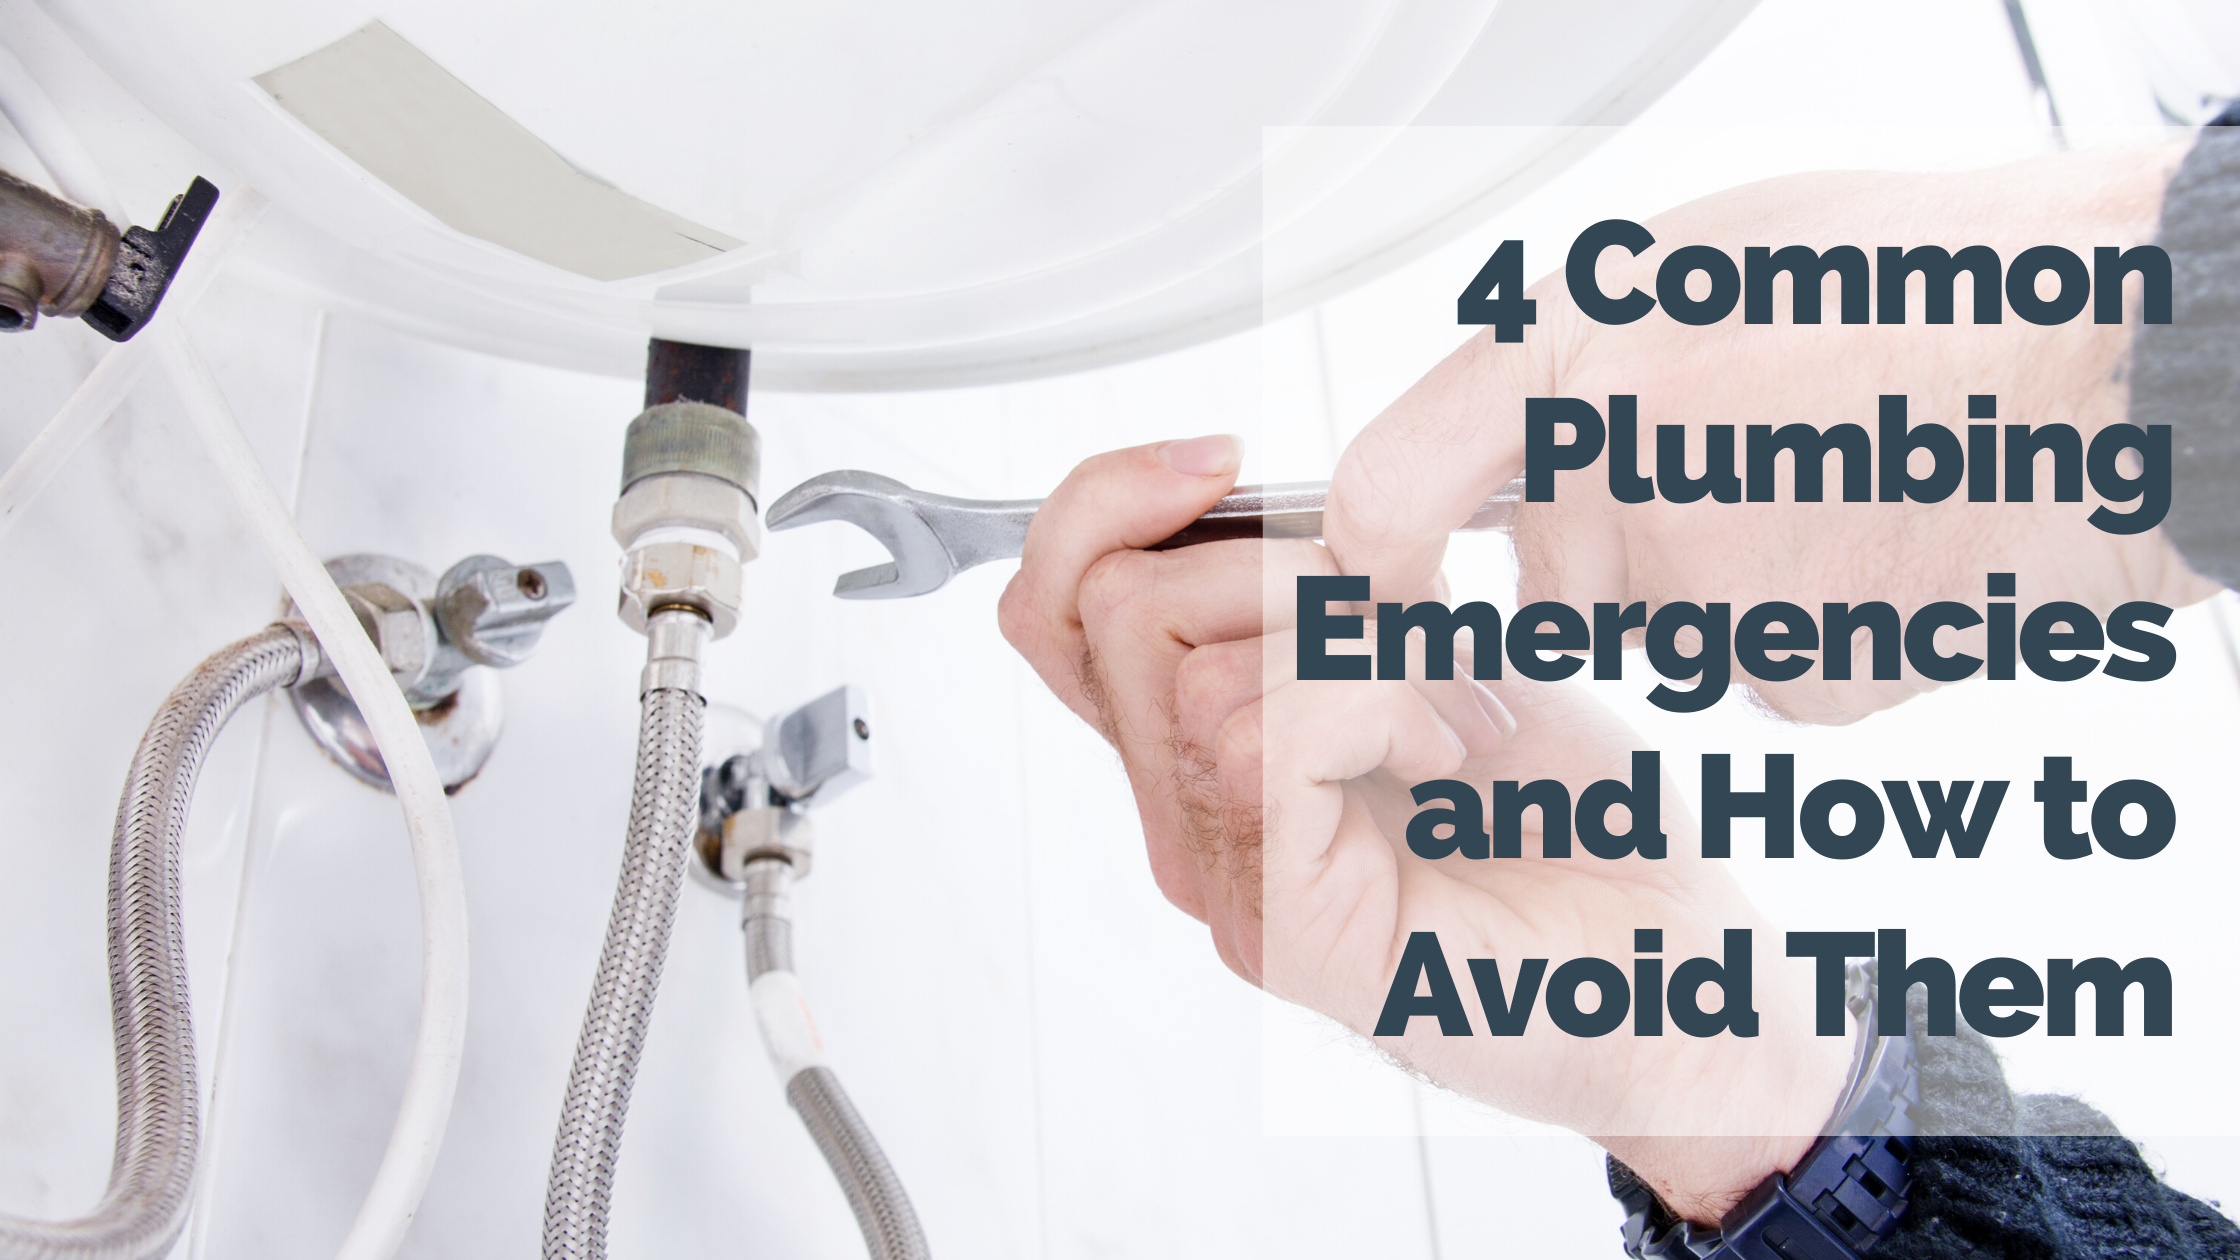 4 Common Plumbing Emergencies and How to Avoid Them